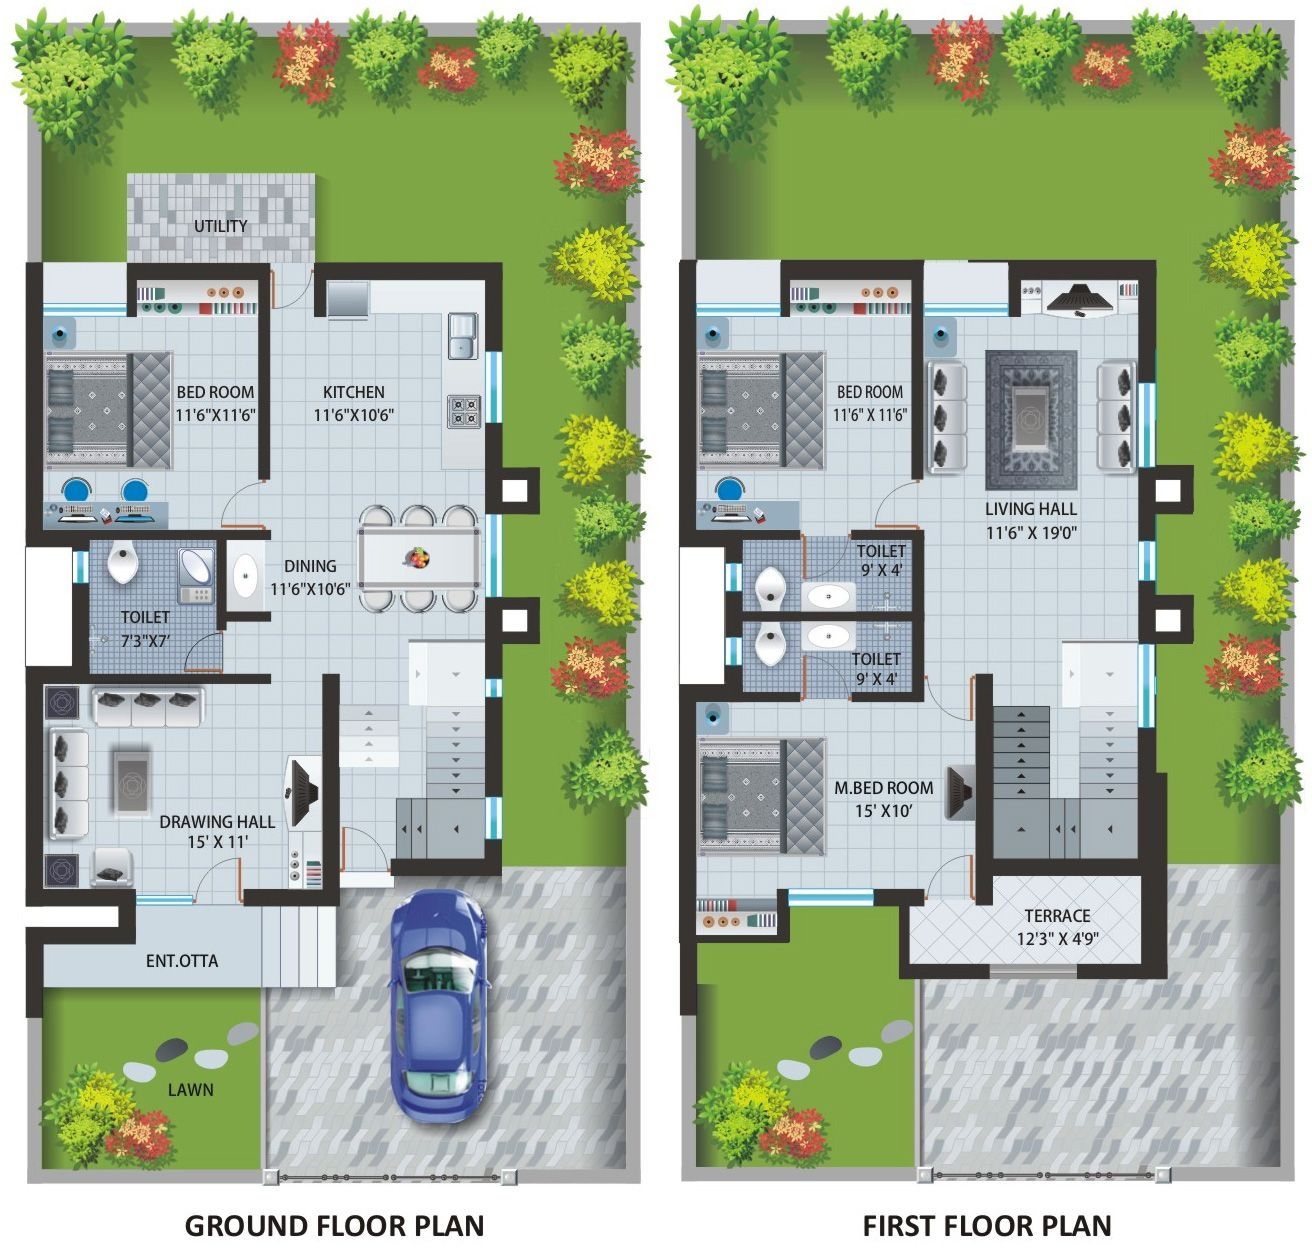 Bungalow 3d Floor Plan: Craftsman Style Bungalows - Google Search